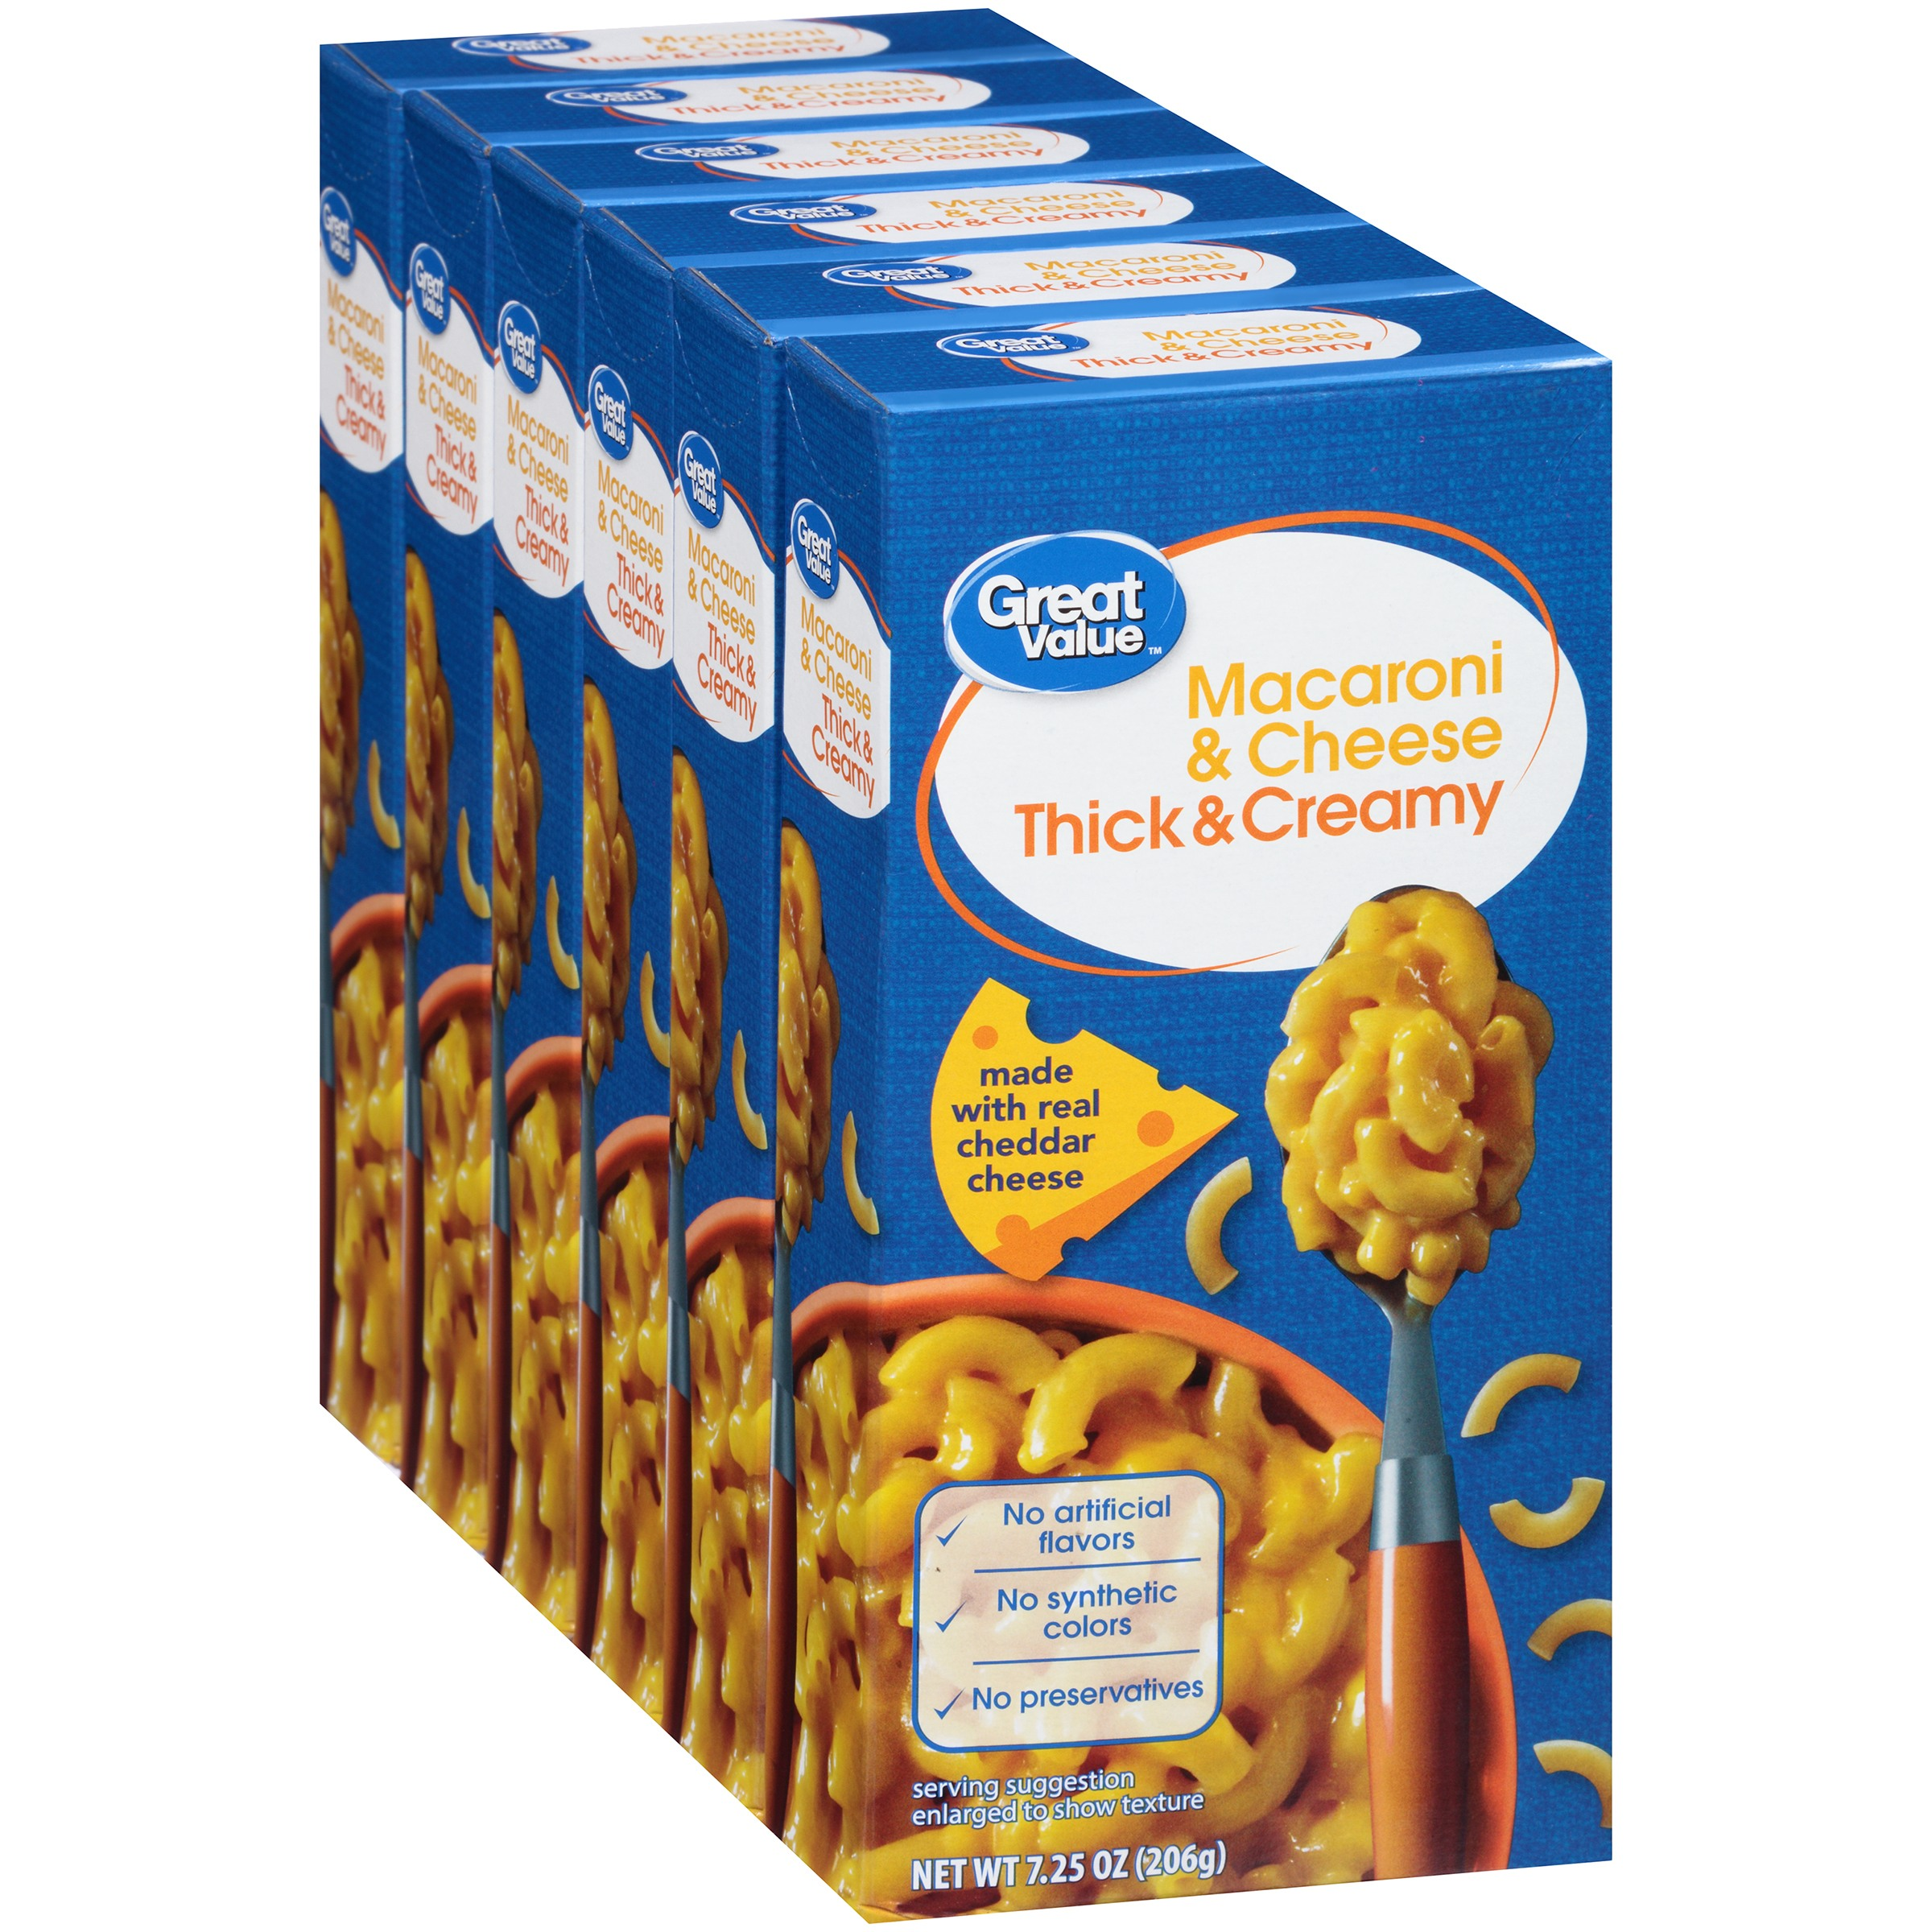 Great Value Macaroni & Cheese, Thick & Creamy, 6 Count